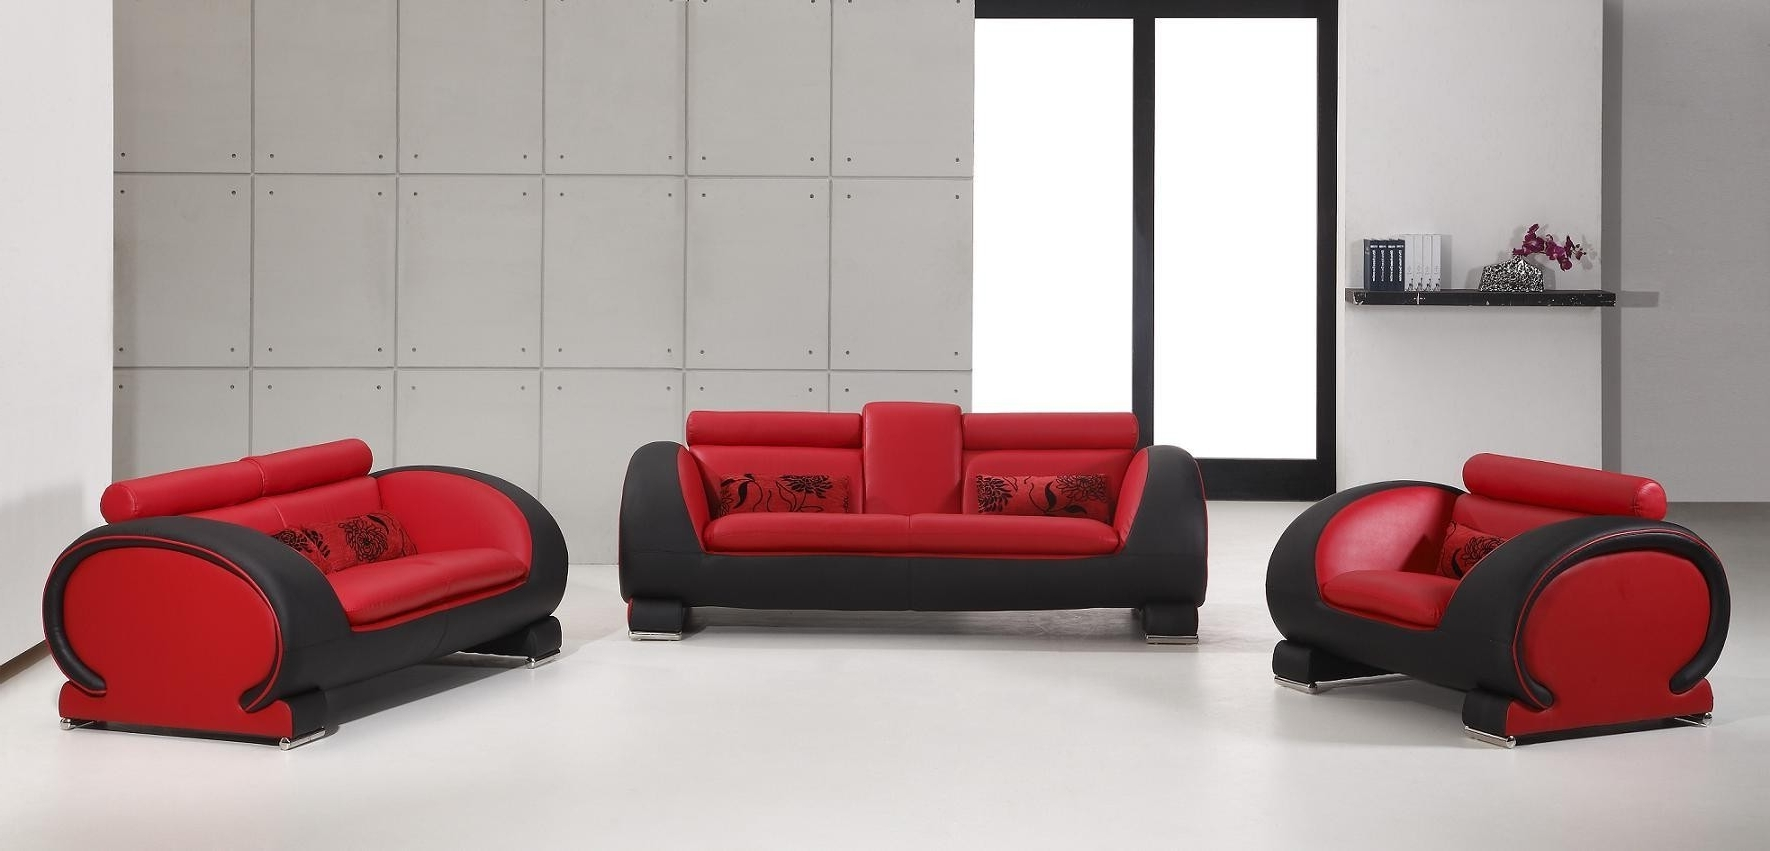 Red And Black Sofas With Regard To Most Recently Released 2811 – Red & Black Bonded Leather Sofa Set Nova Interiors (View 20 of 20)